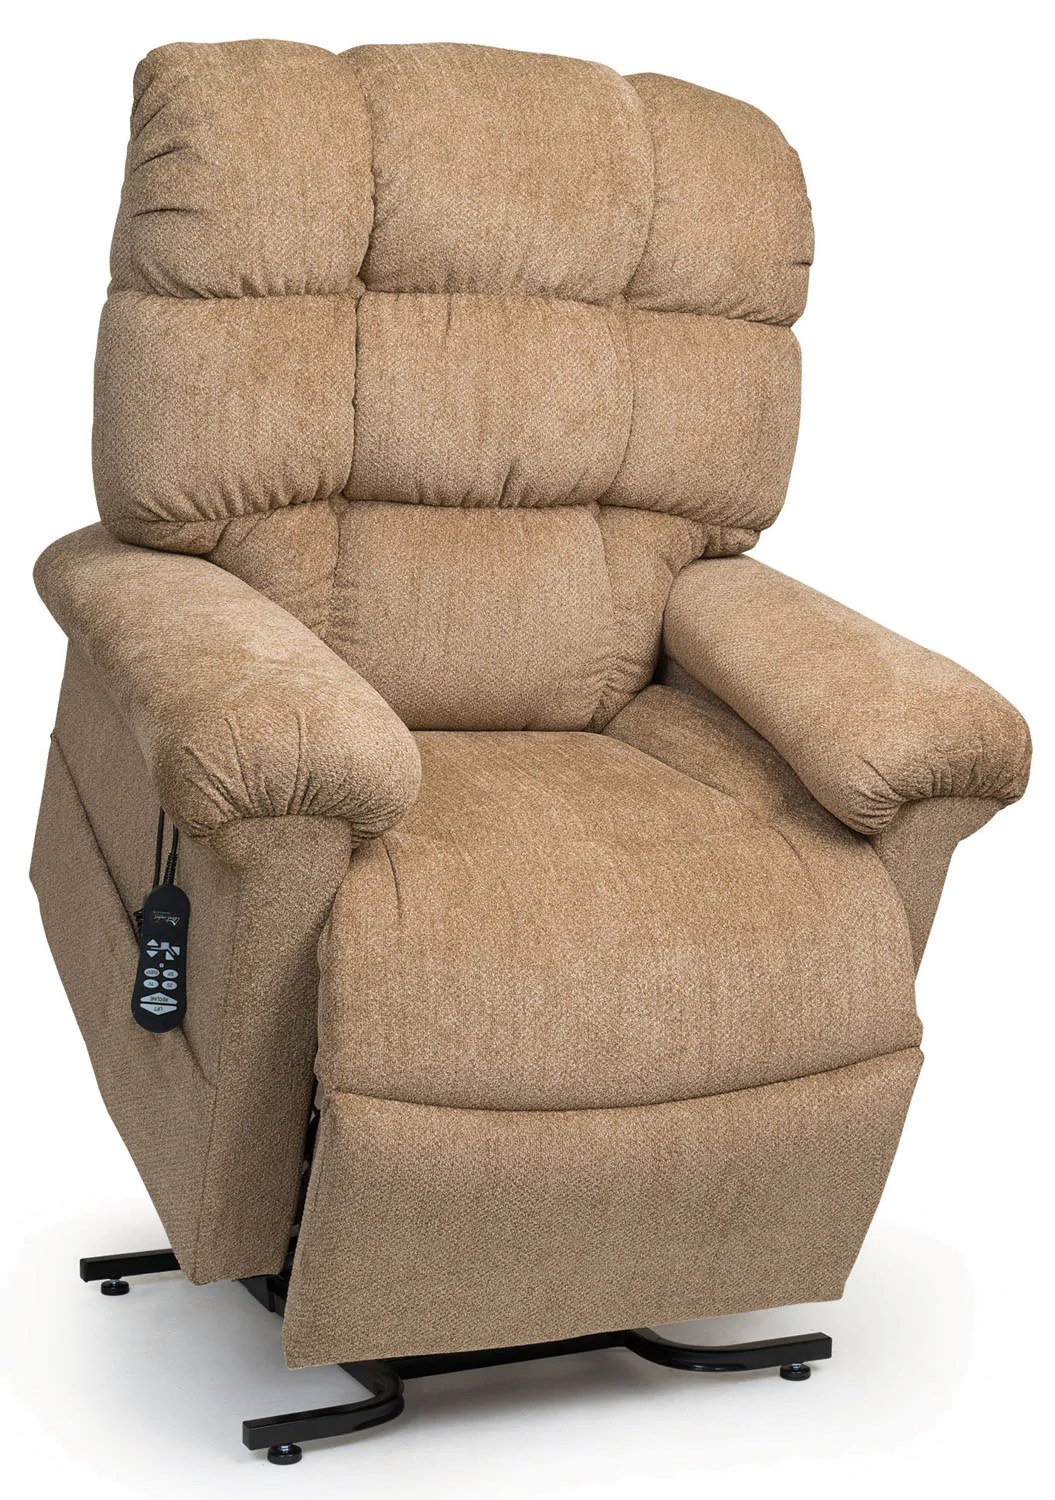 big and tall recliner chair ikea living room covers automatic lift recliners for people